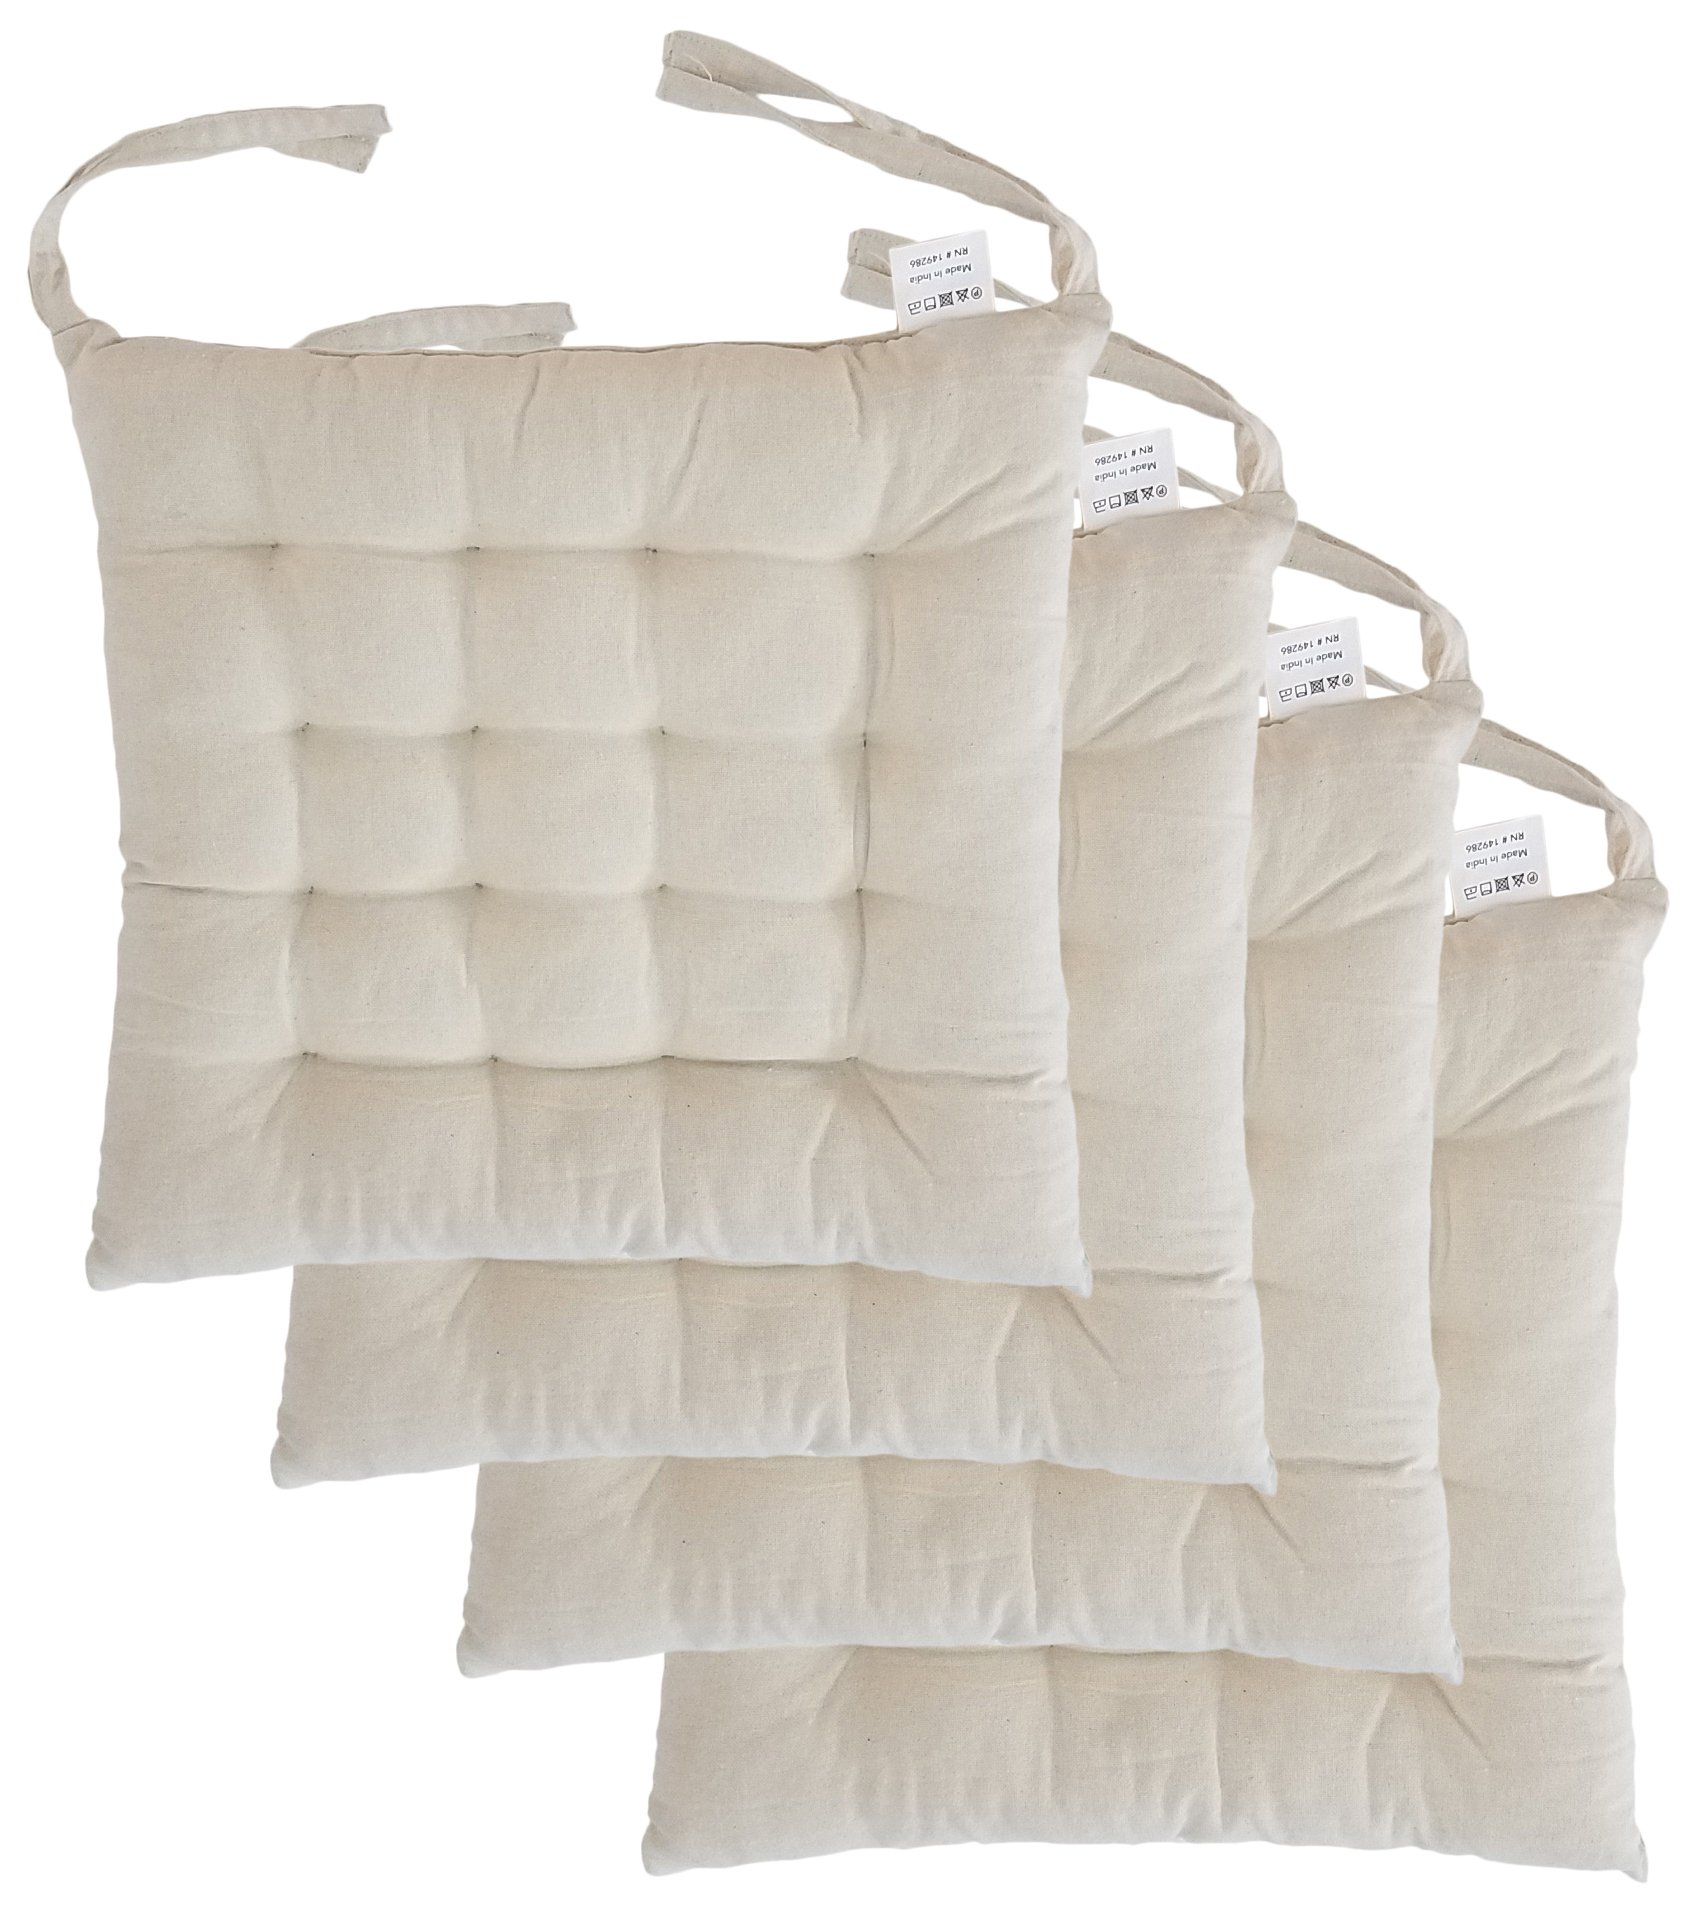 Cottone 100% Cotton Chair Pads w/Ties (Set of 4) | 16'' x 15'' Square | Extra-Comfortable & Soft Seat Cushions | Ergonomic Pillows for Rocking, Dining, Patio, Camping, Kitchen Chairs & More,  White, Off White